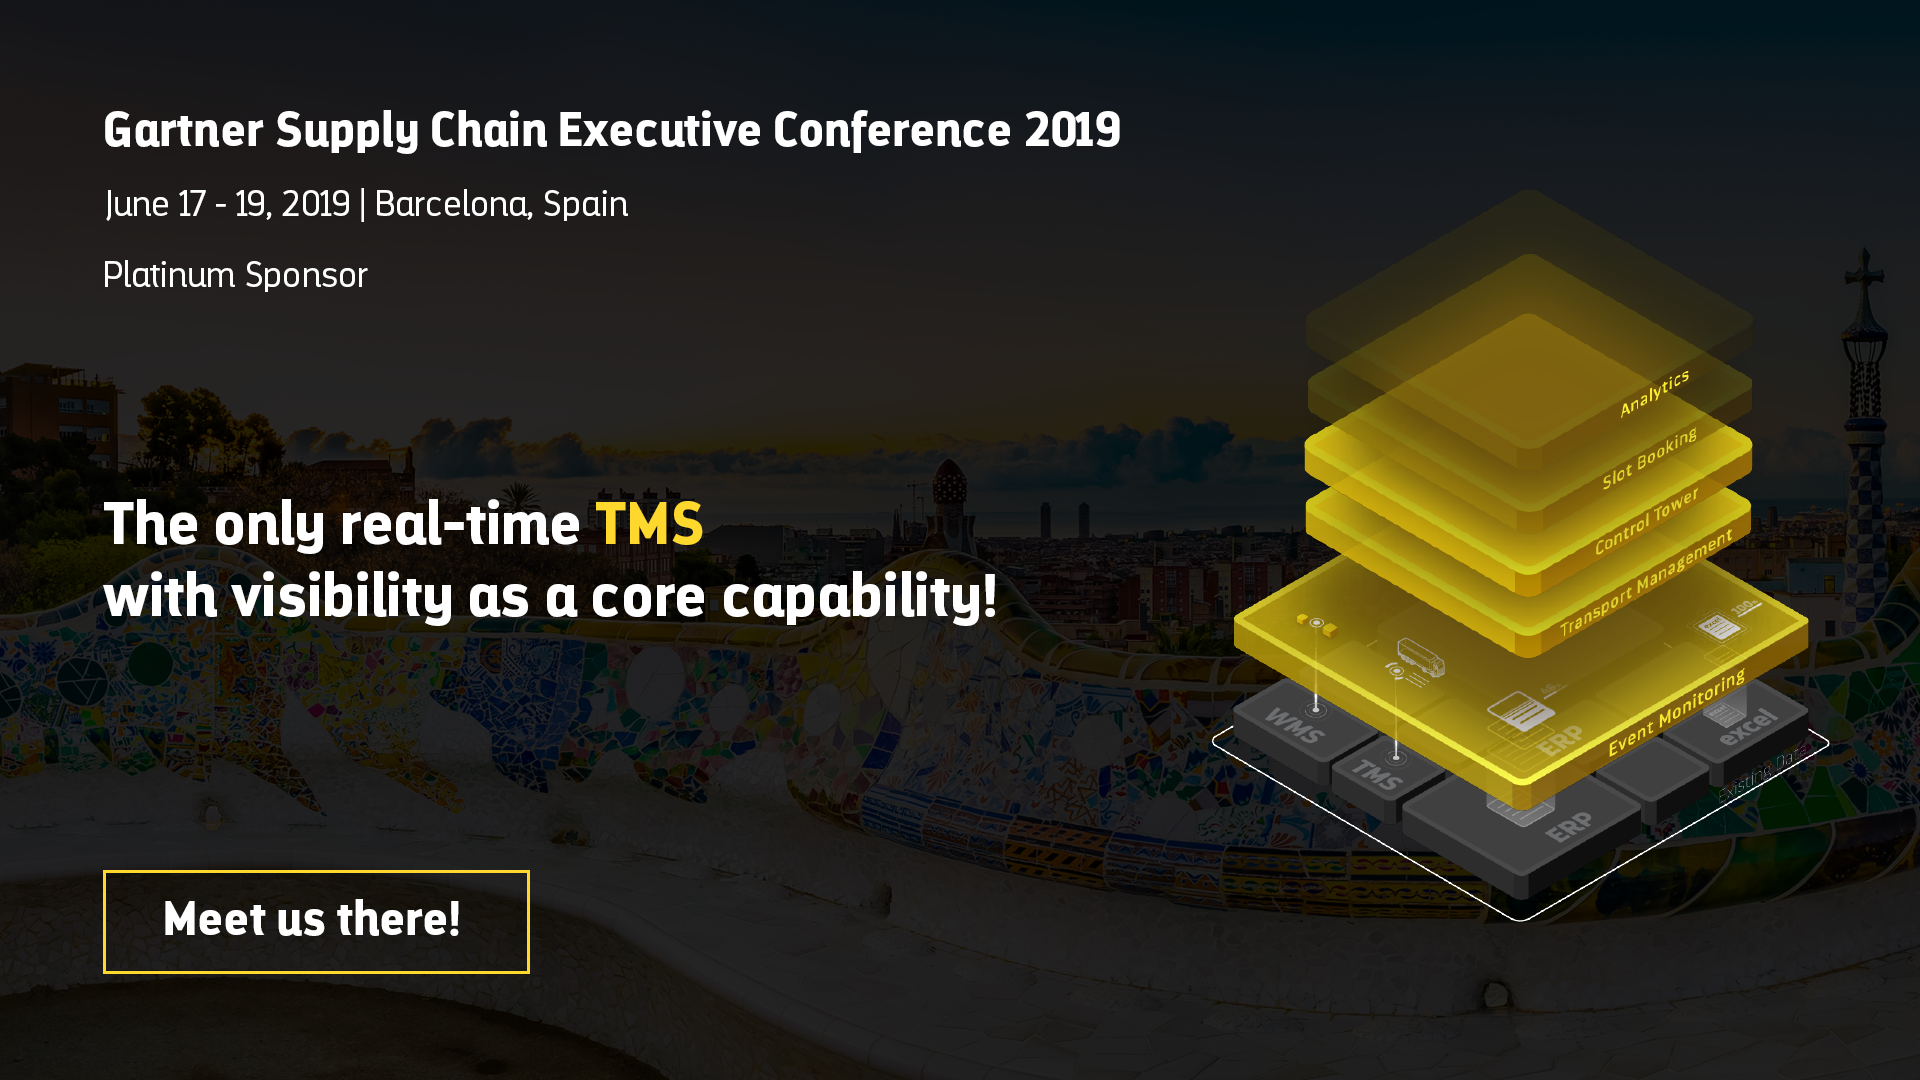 Gartner Supply Chain Executive Conference 2019 Barcelona